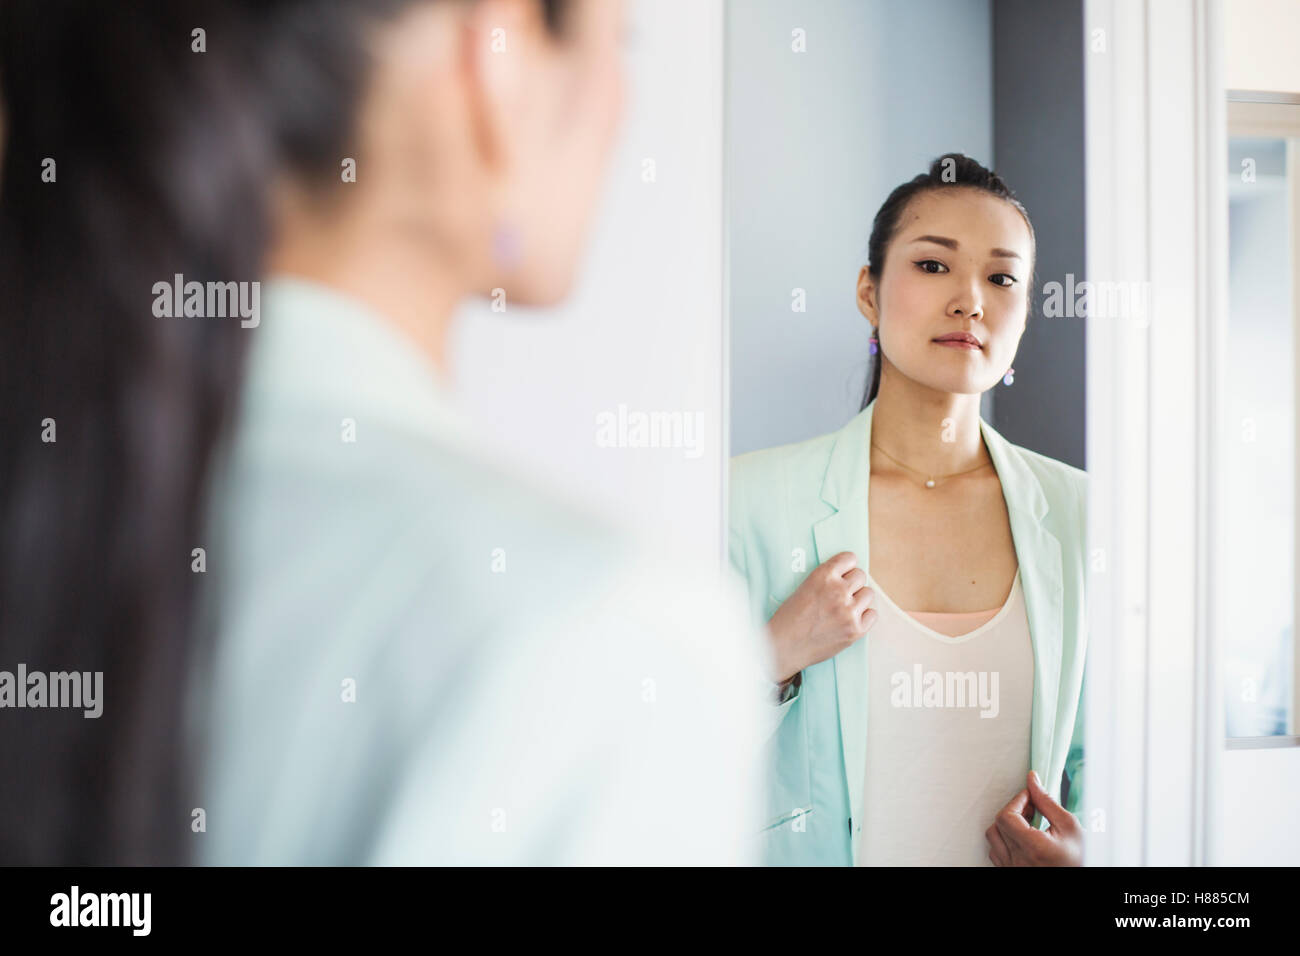 A business woman preparing for work, waking up and dressing. - Stock Image